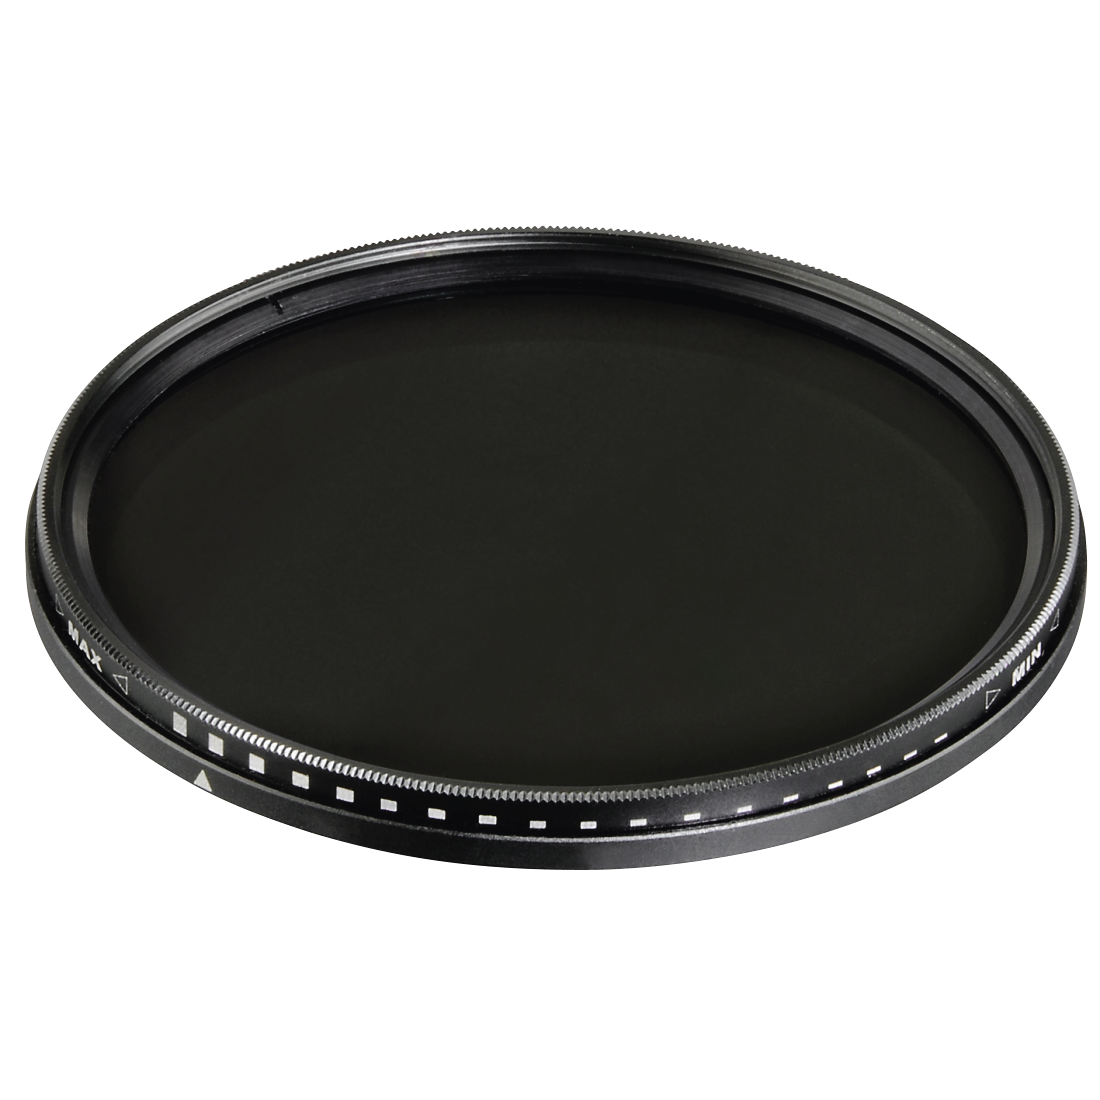 abx High-Res Image - Hama, Vario ND2-400 Neutral-Density Filter, coated, 62.0 mm